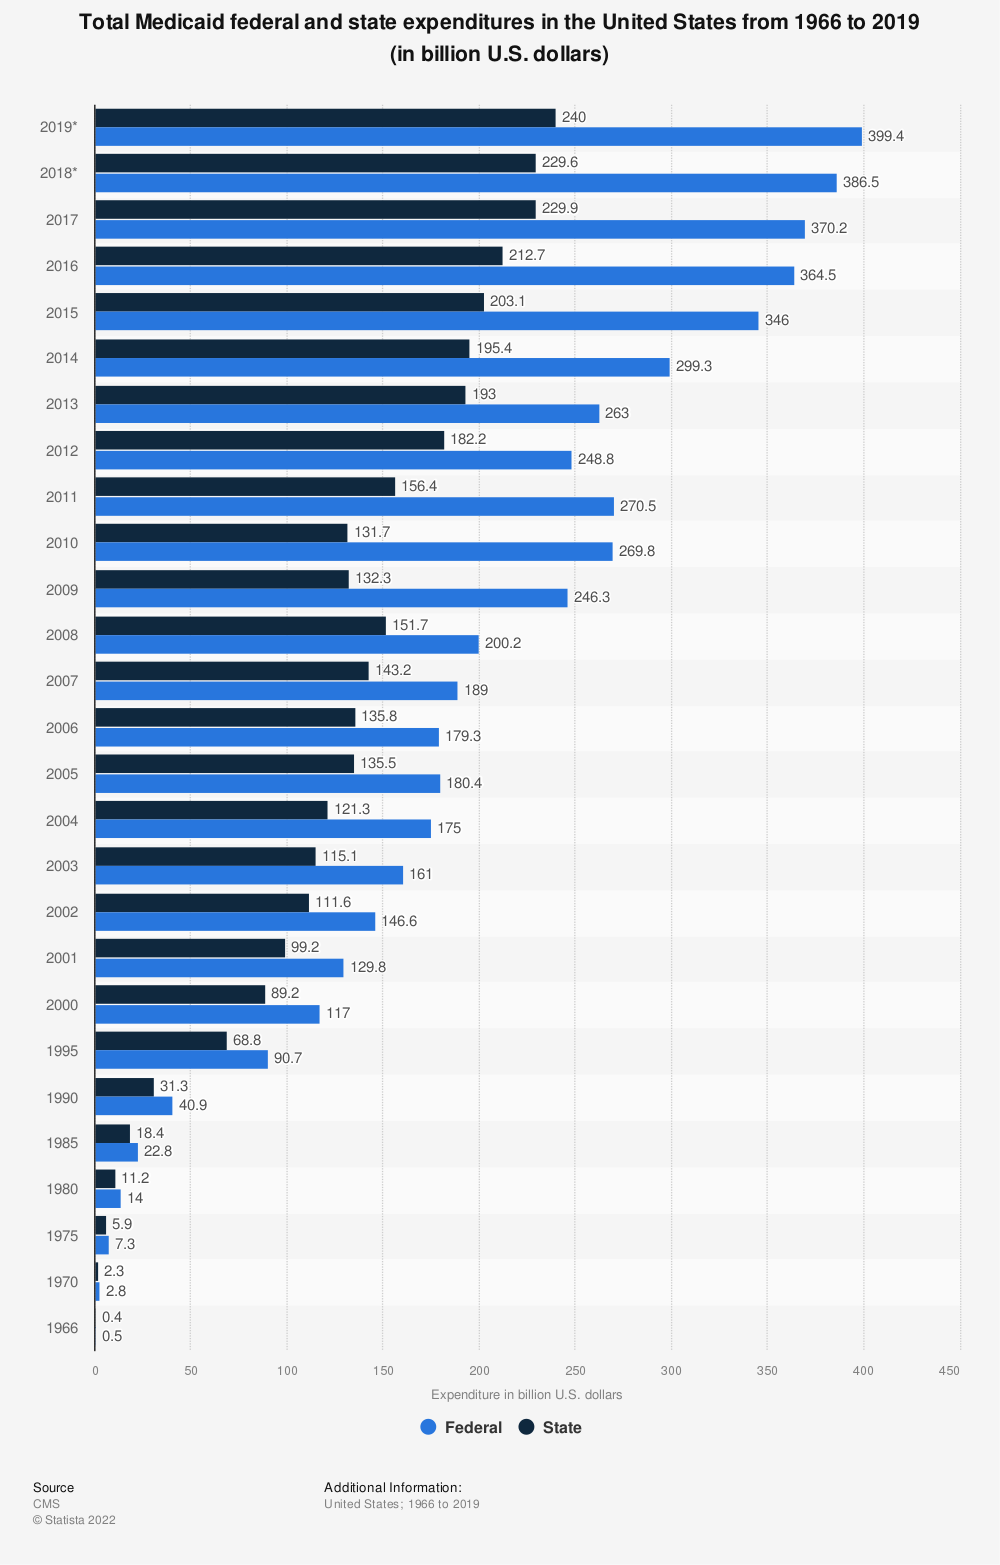 Statistic: Total Medicaid federal and state expenditures in the United States from 1966 to 2018 (in billion U.S. dollars) | Statista